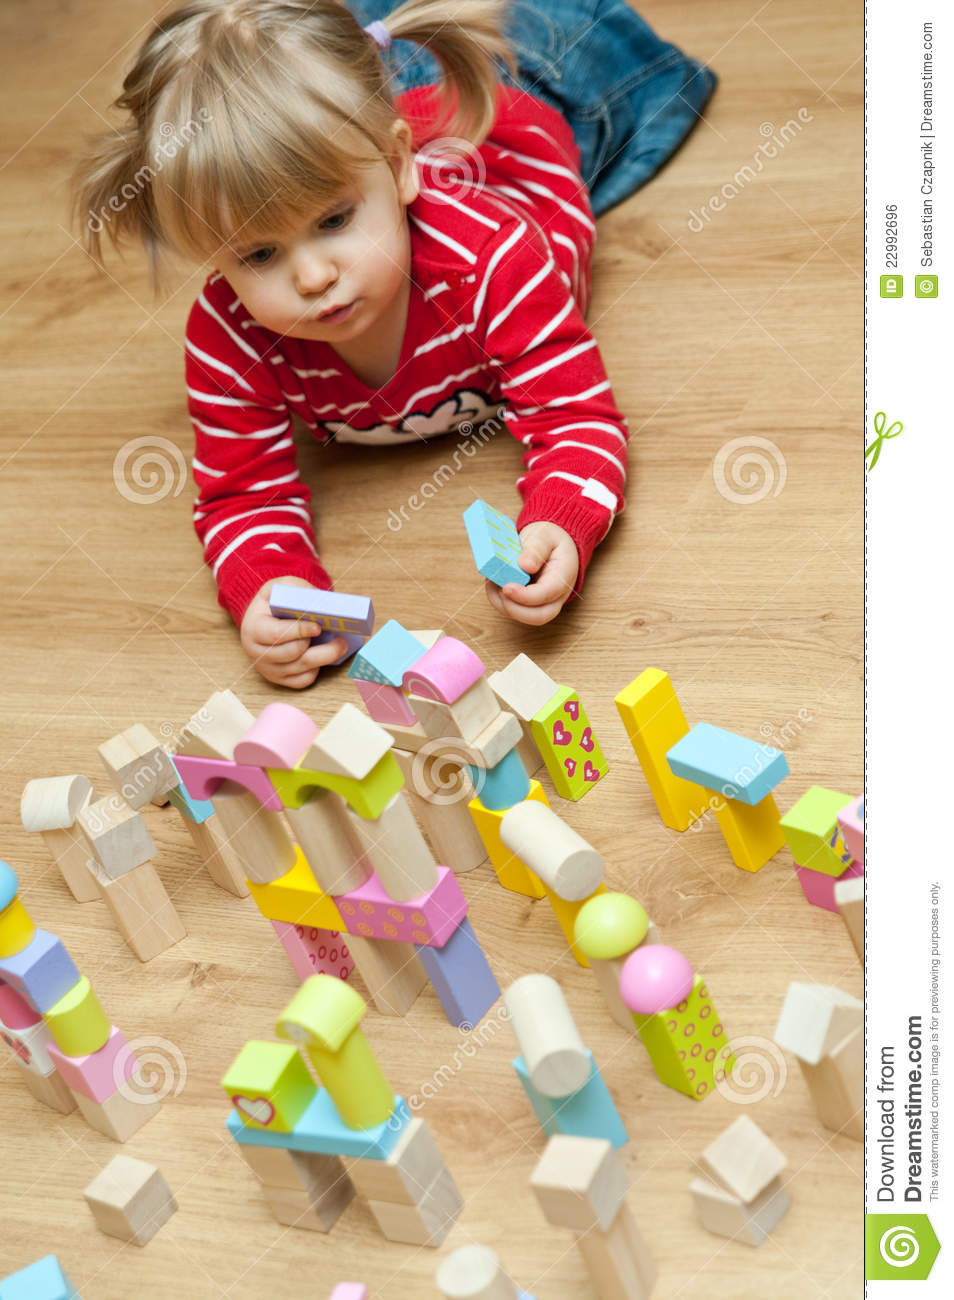 Little Girl Toys : Little girl with toy blocks royalty free stock image